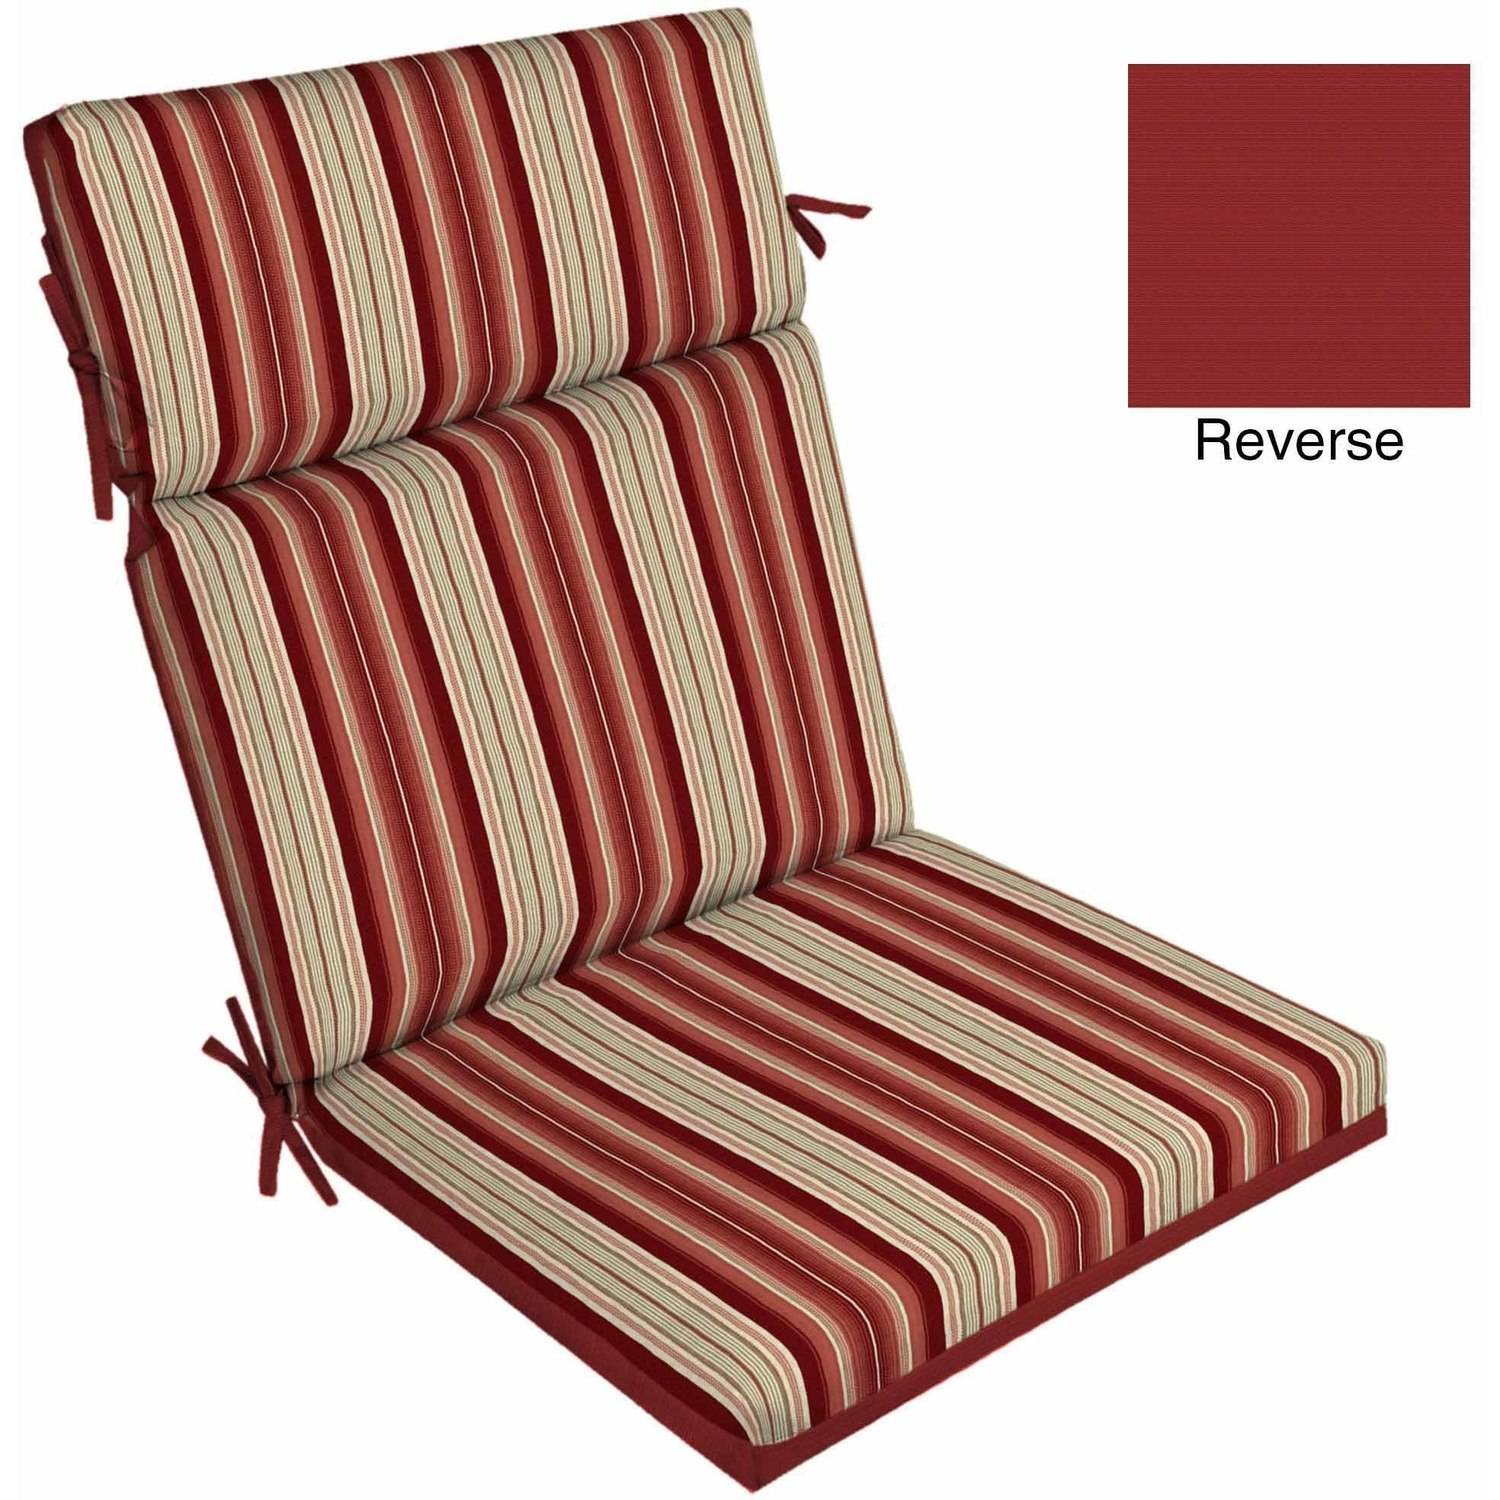 Patio Chair Cushions Cheap Better Homes And Gardens Outdoor Patio Reversible Dining Chair Cushion